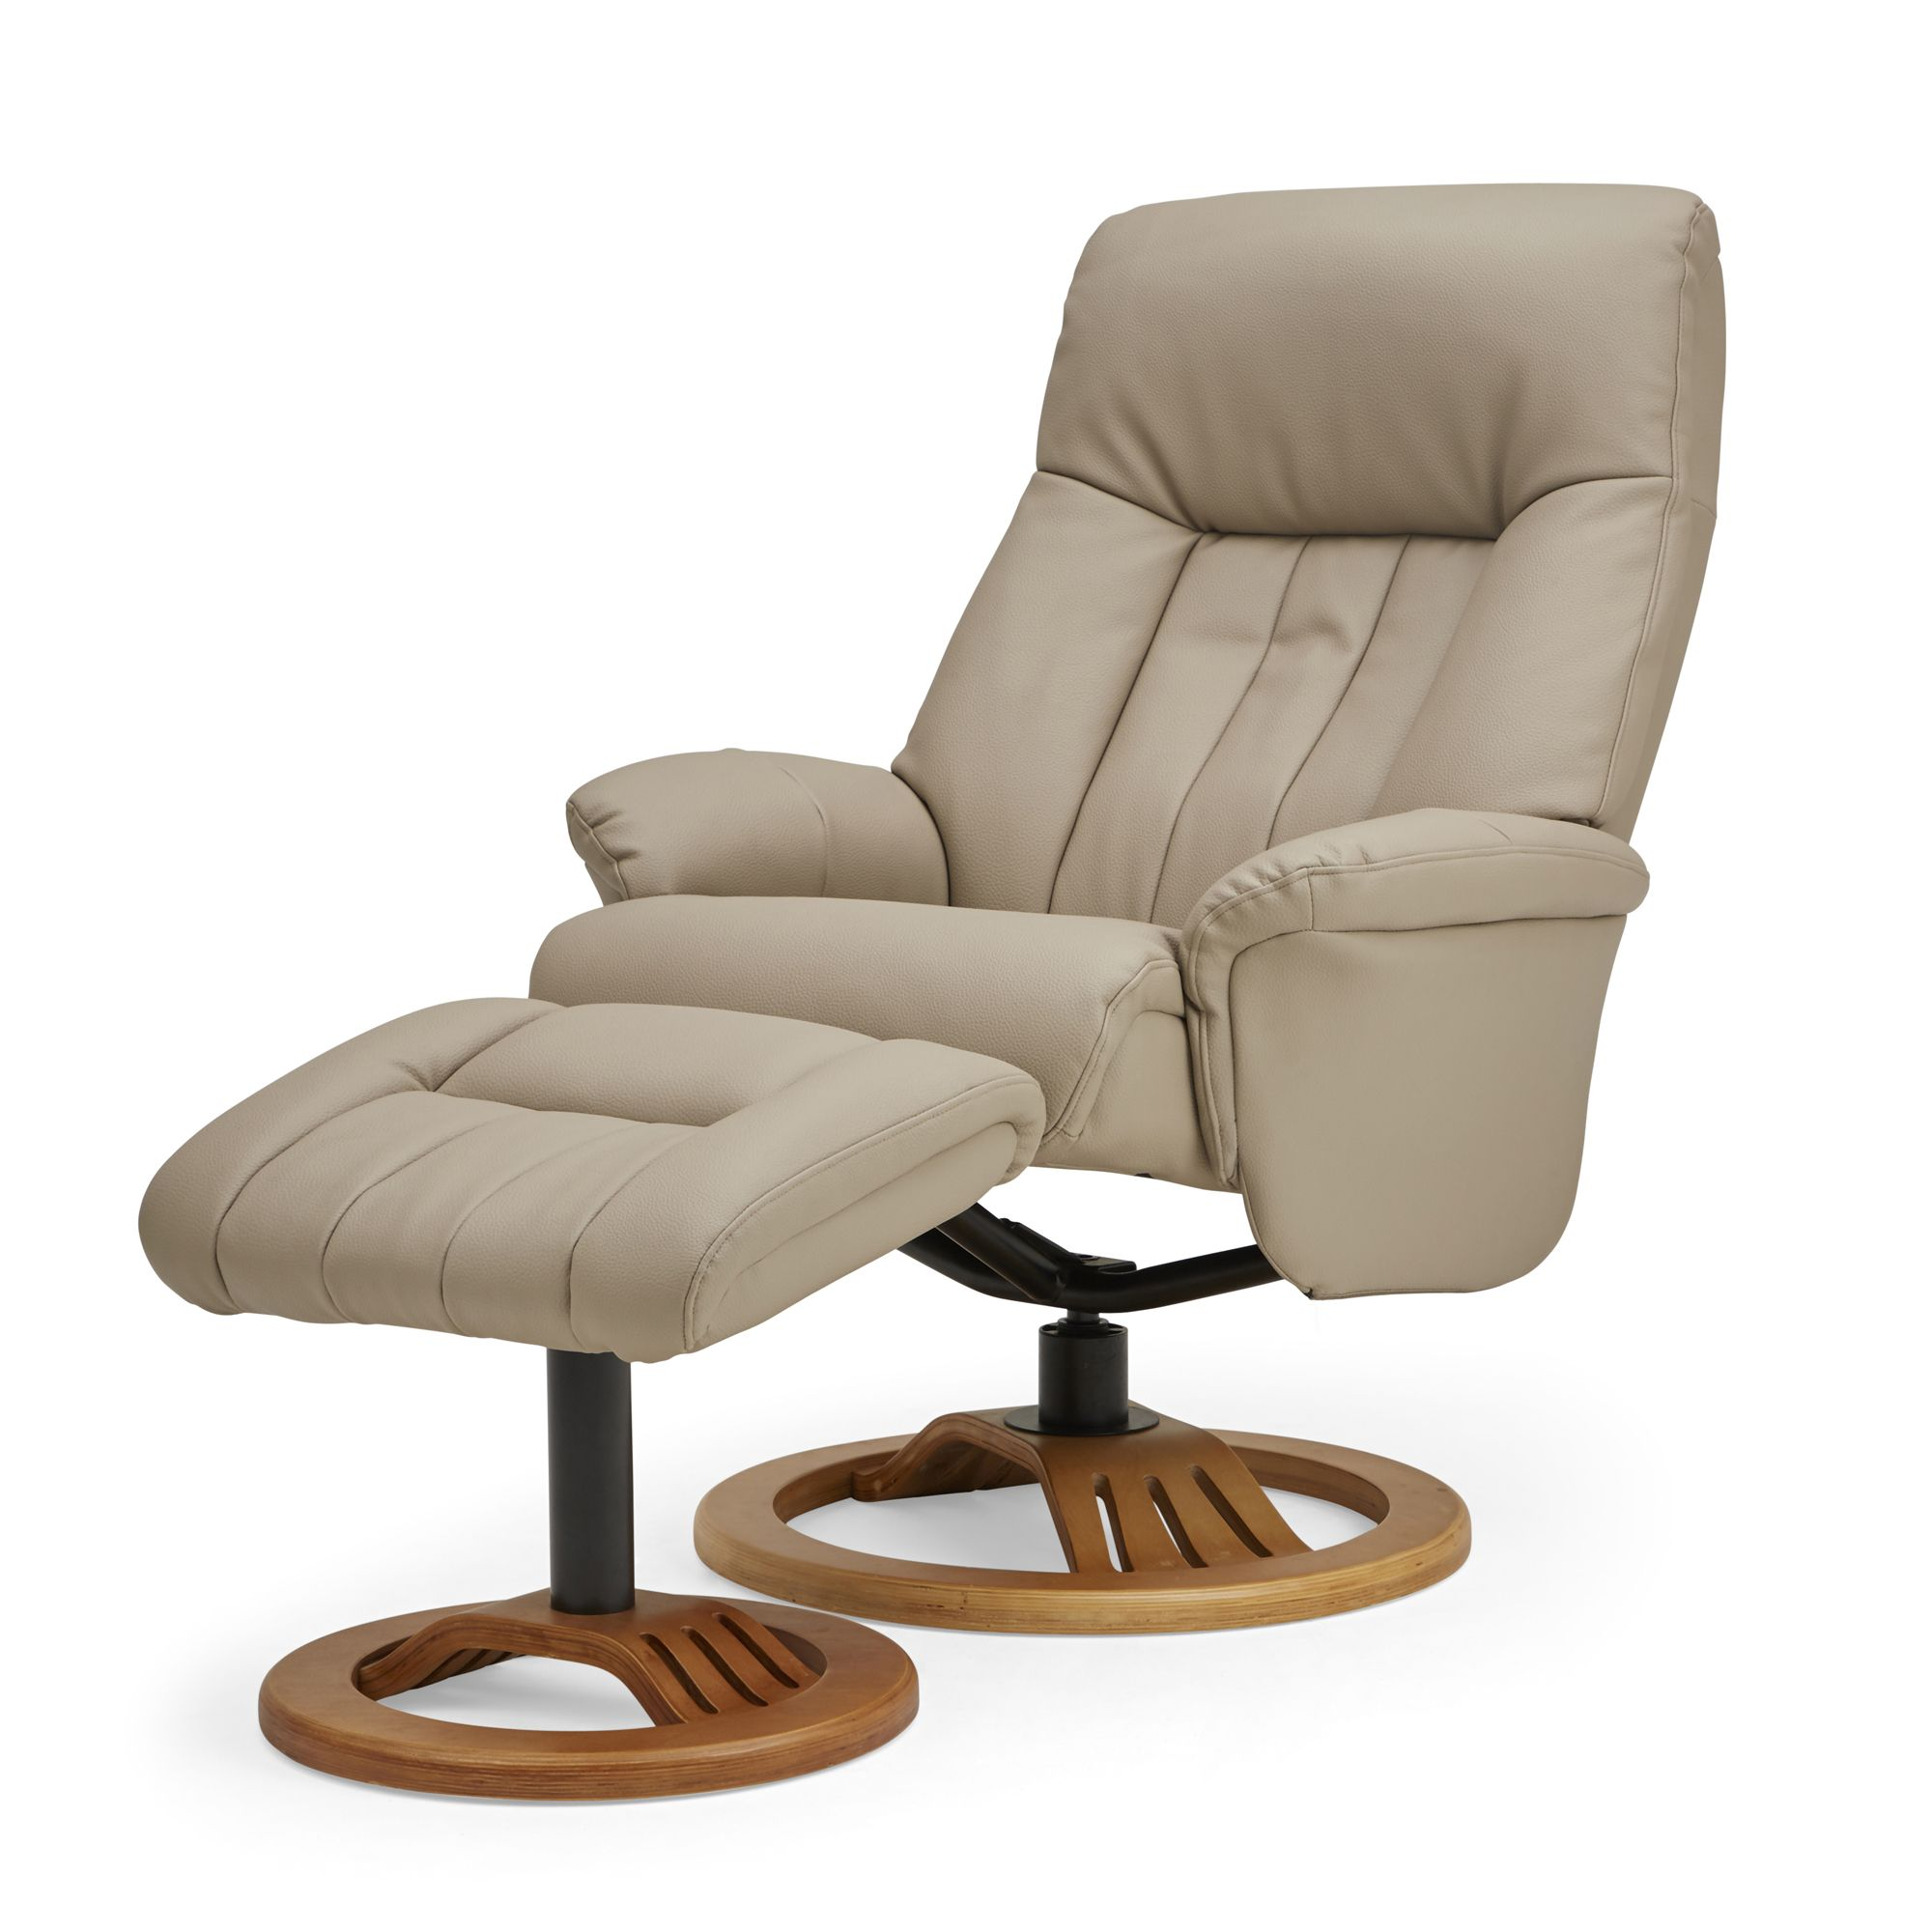 Nelson Swivel Recliner Chair and Footstool - Natural ...